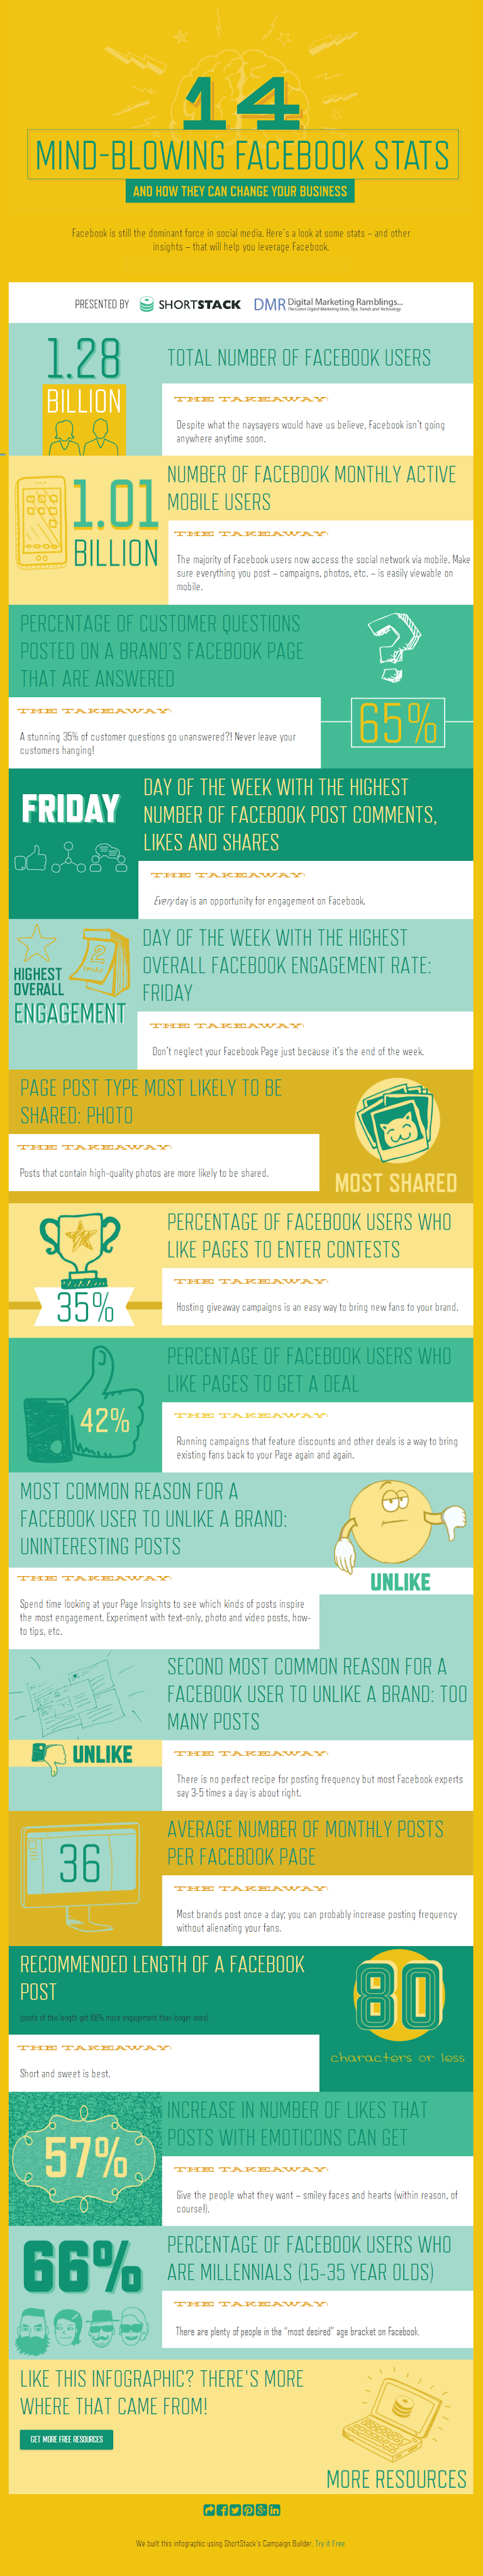 14 Amazing Facebook insights Social Media Marketers Need to Know - #infographic